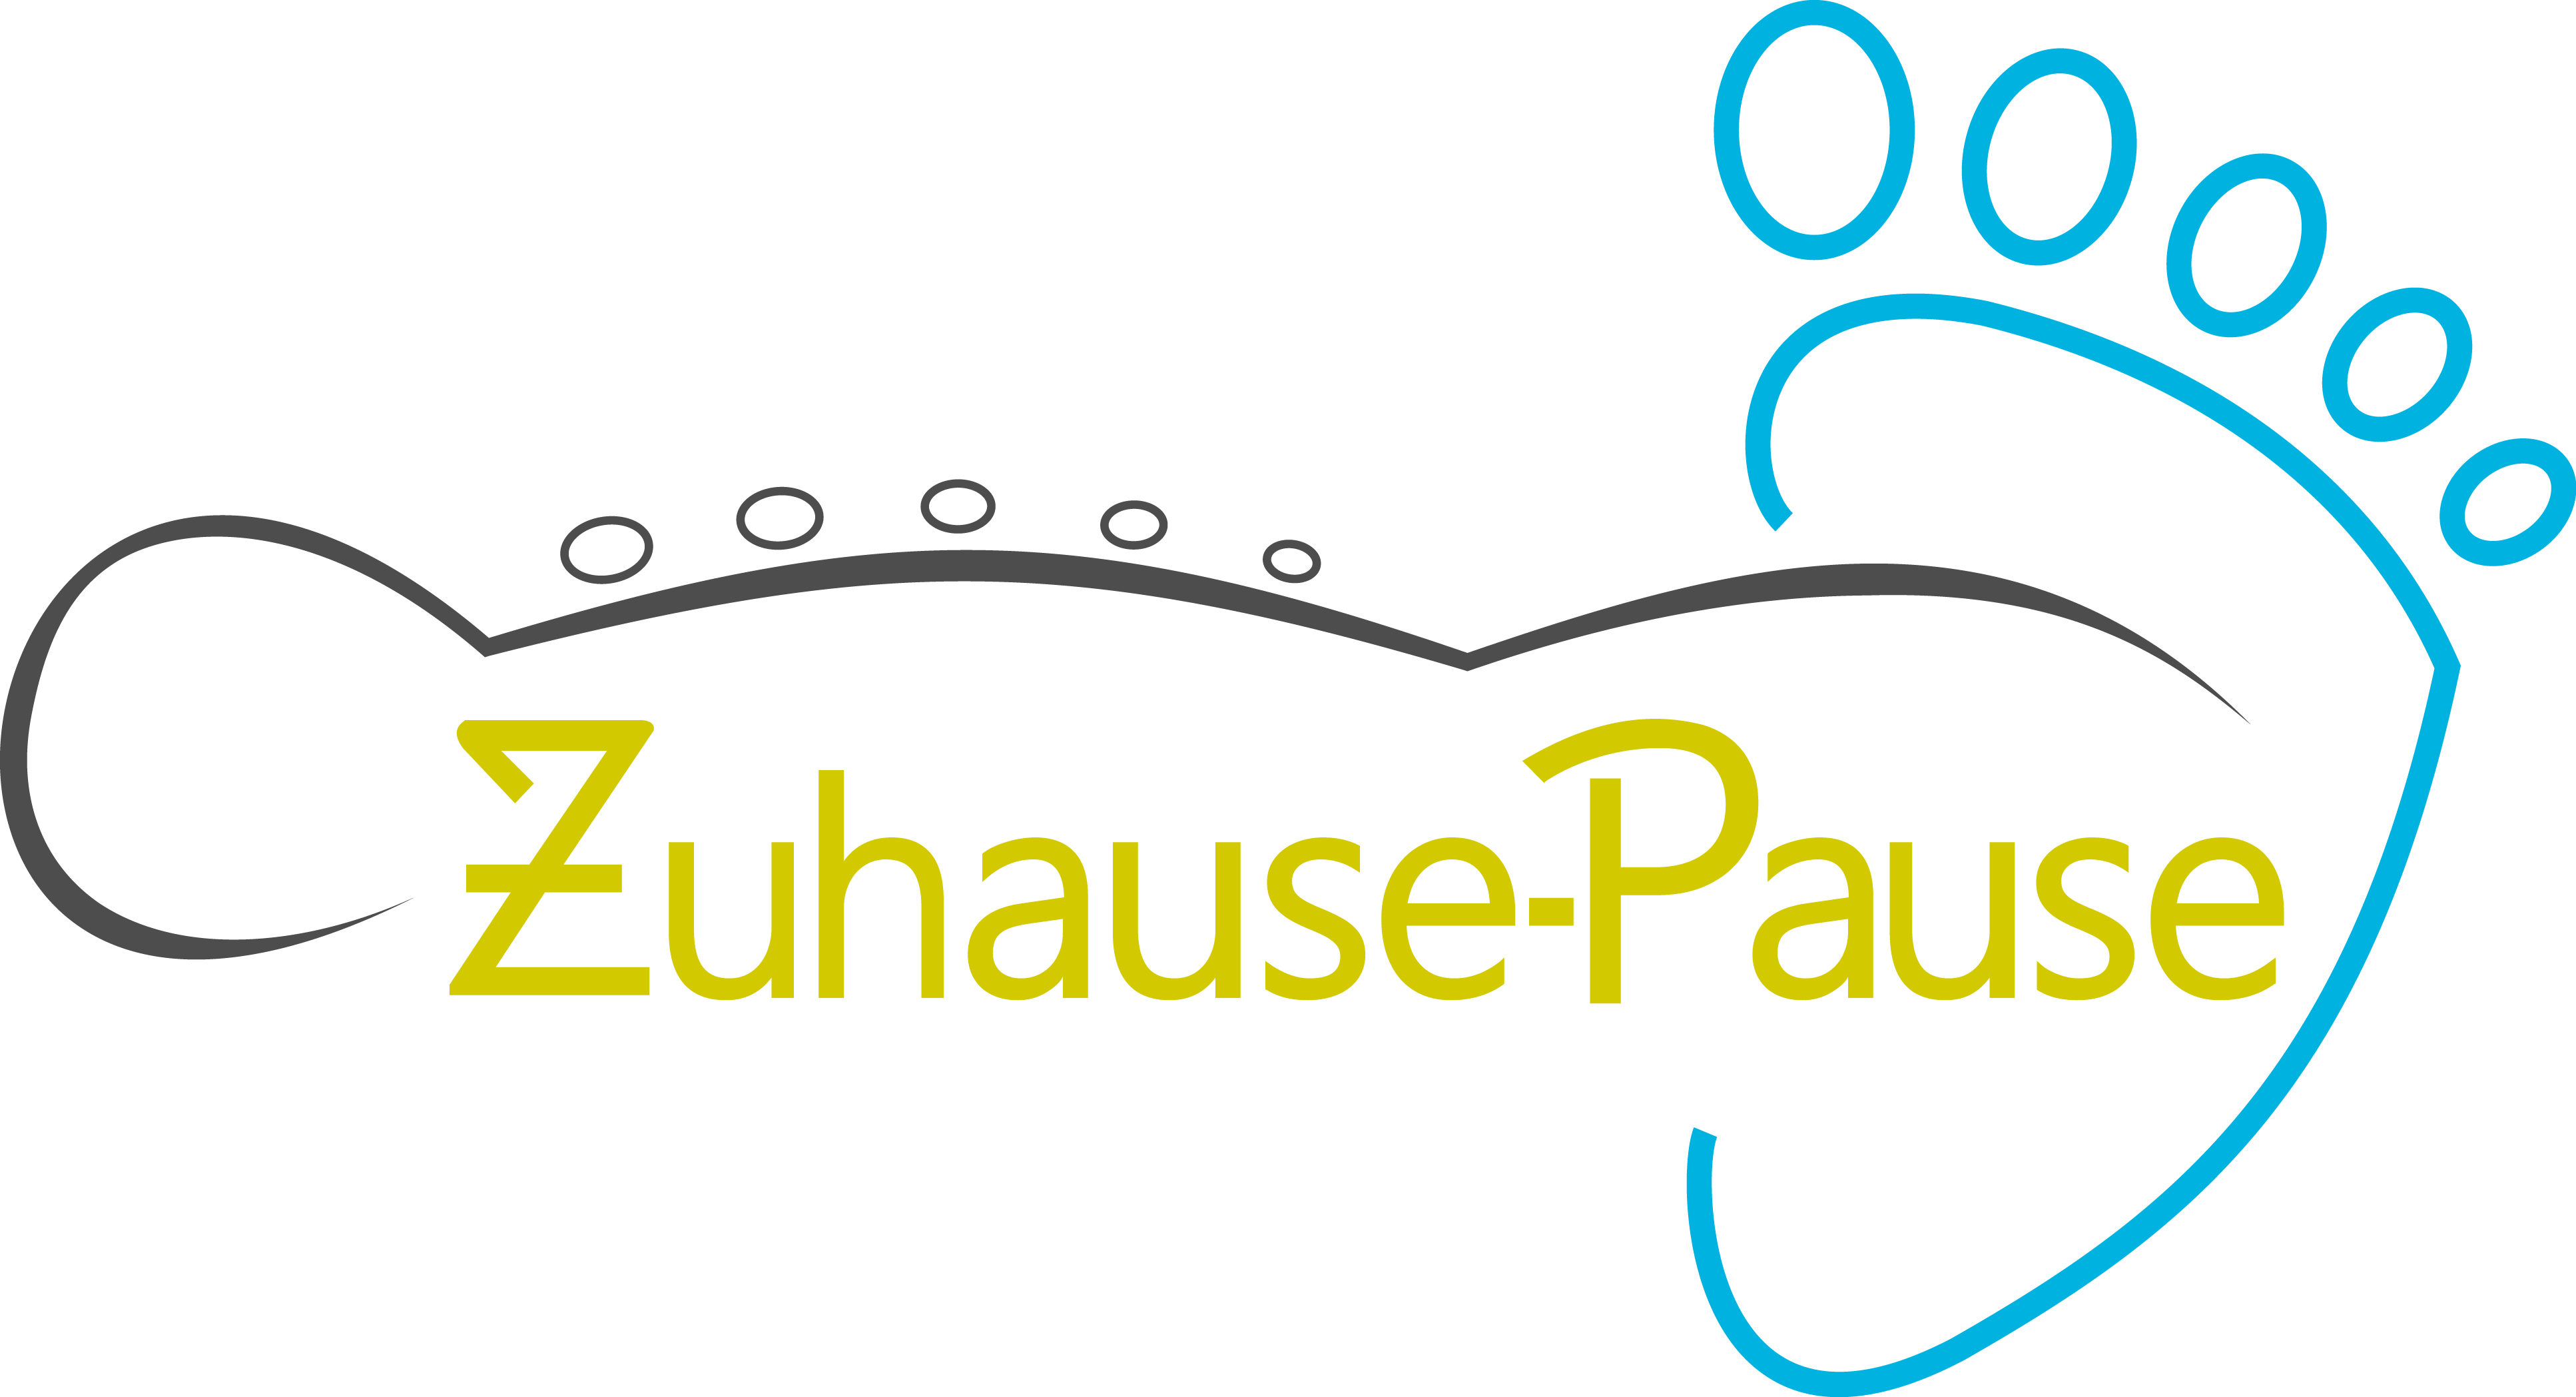 Zuhause-Pause